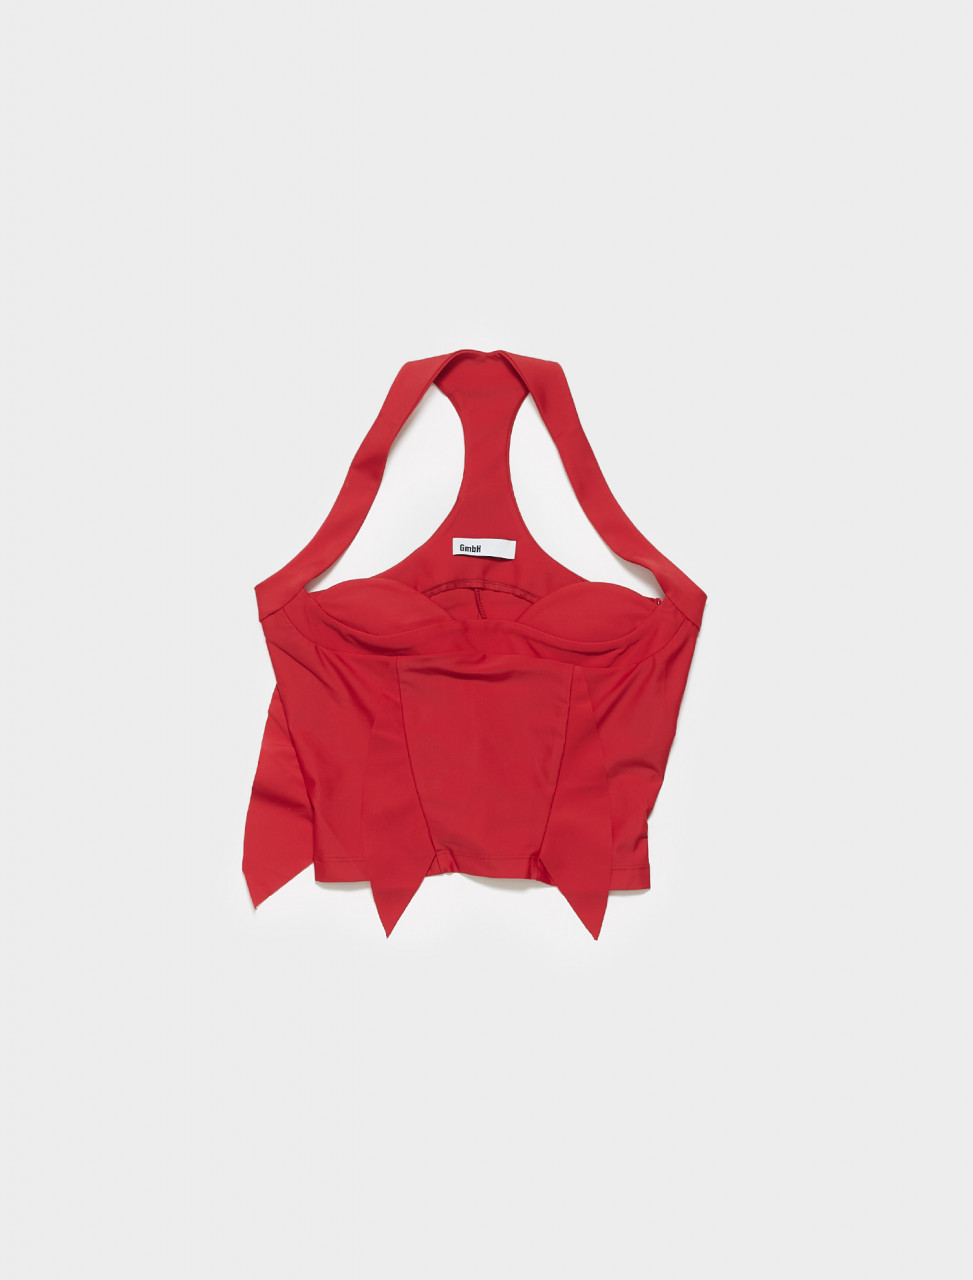 LALE_W-RED GMBH LALE TOP RED